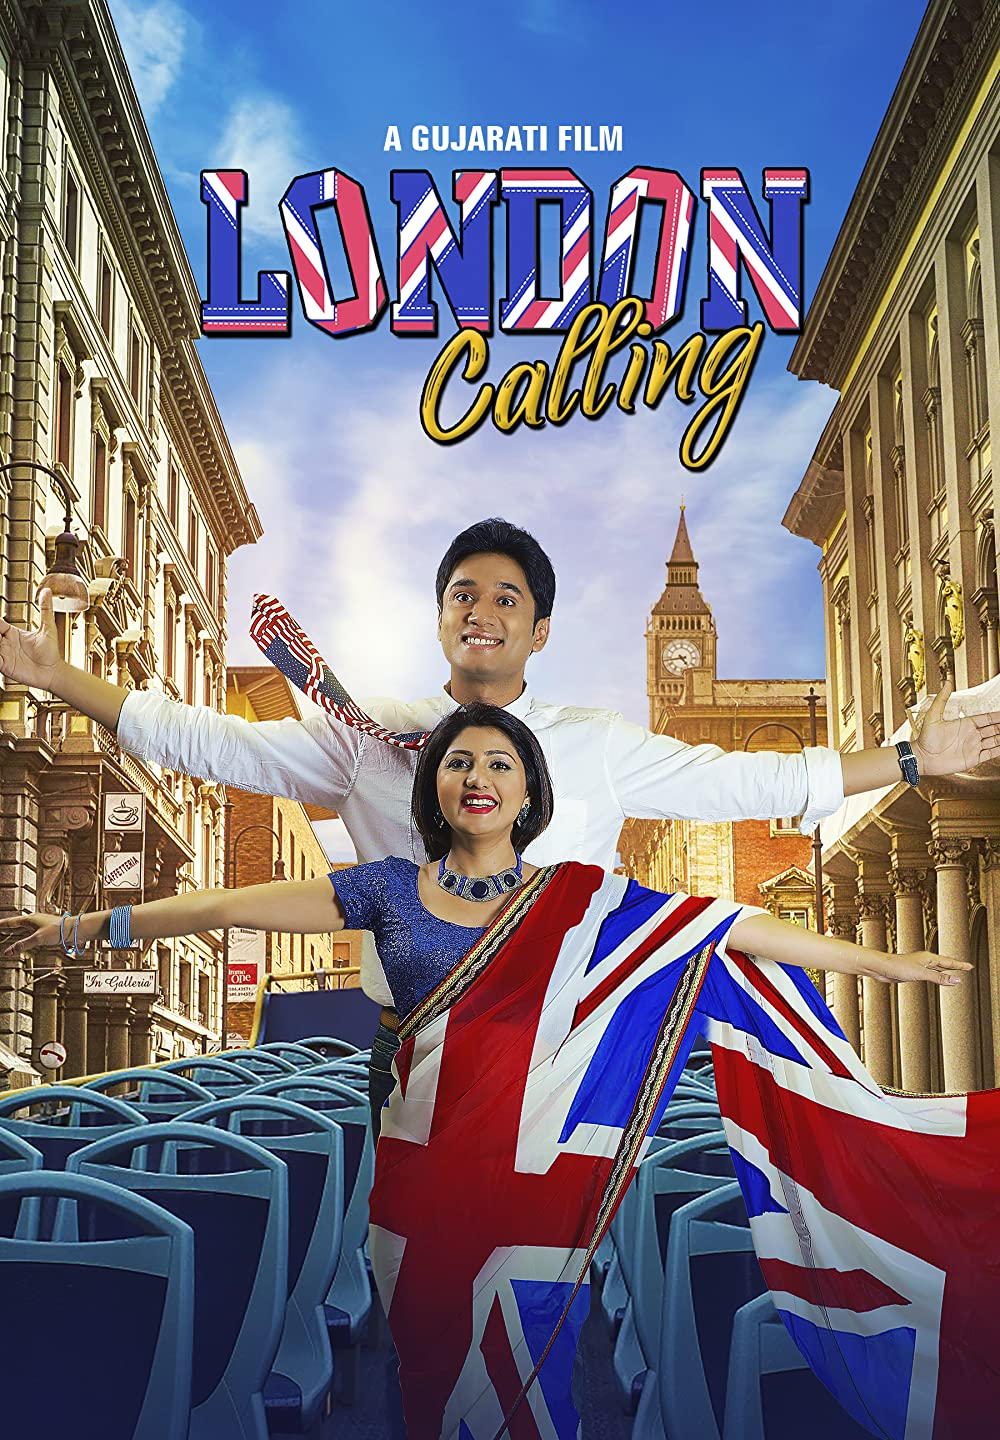 London Calling 2020 Gujrati Full Movie 1080p HDRip ESubs 1.8GB Download